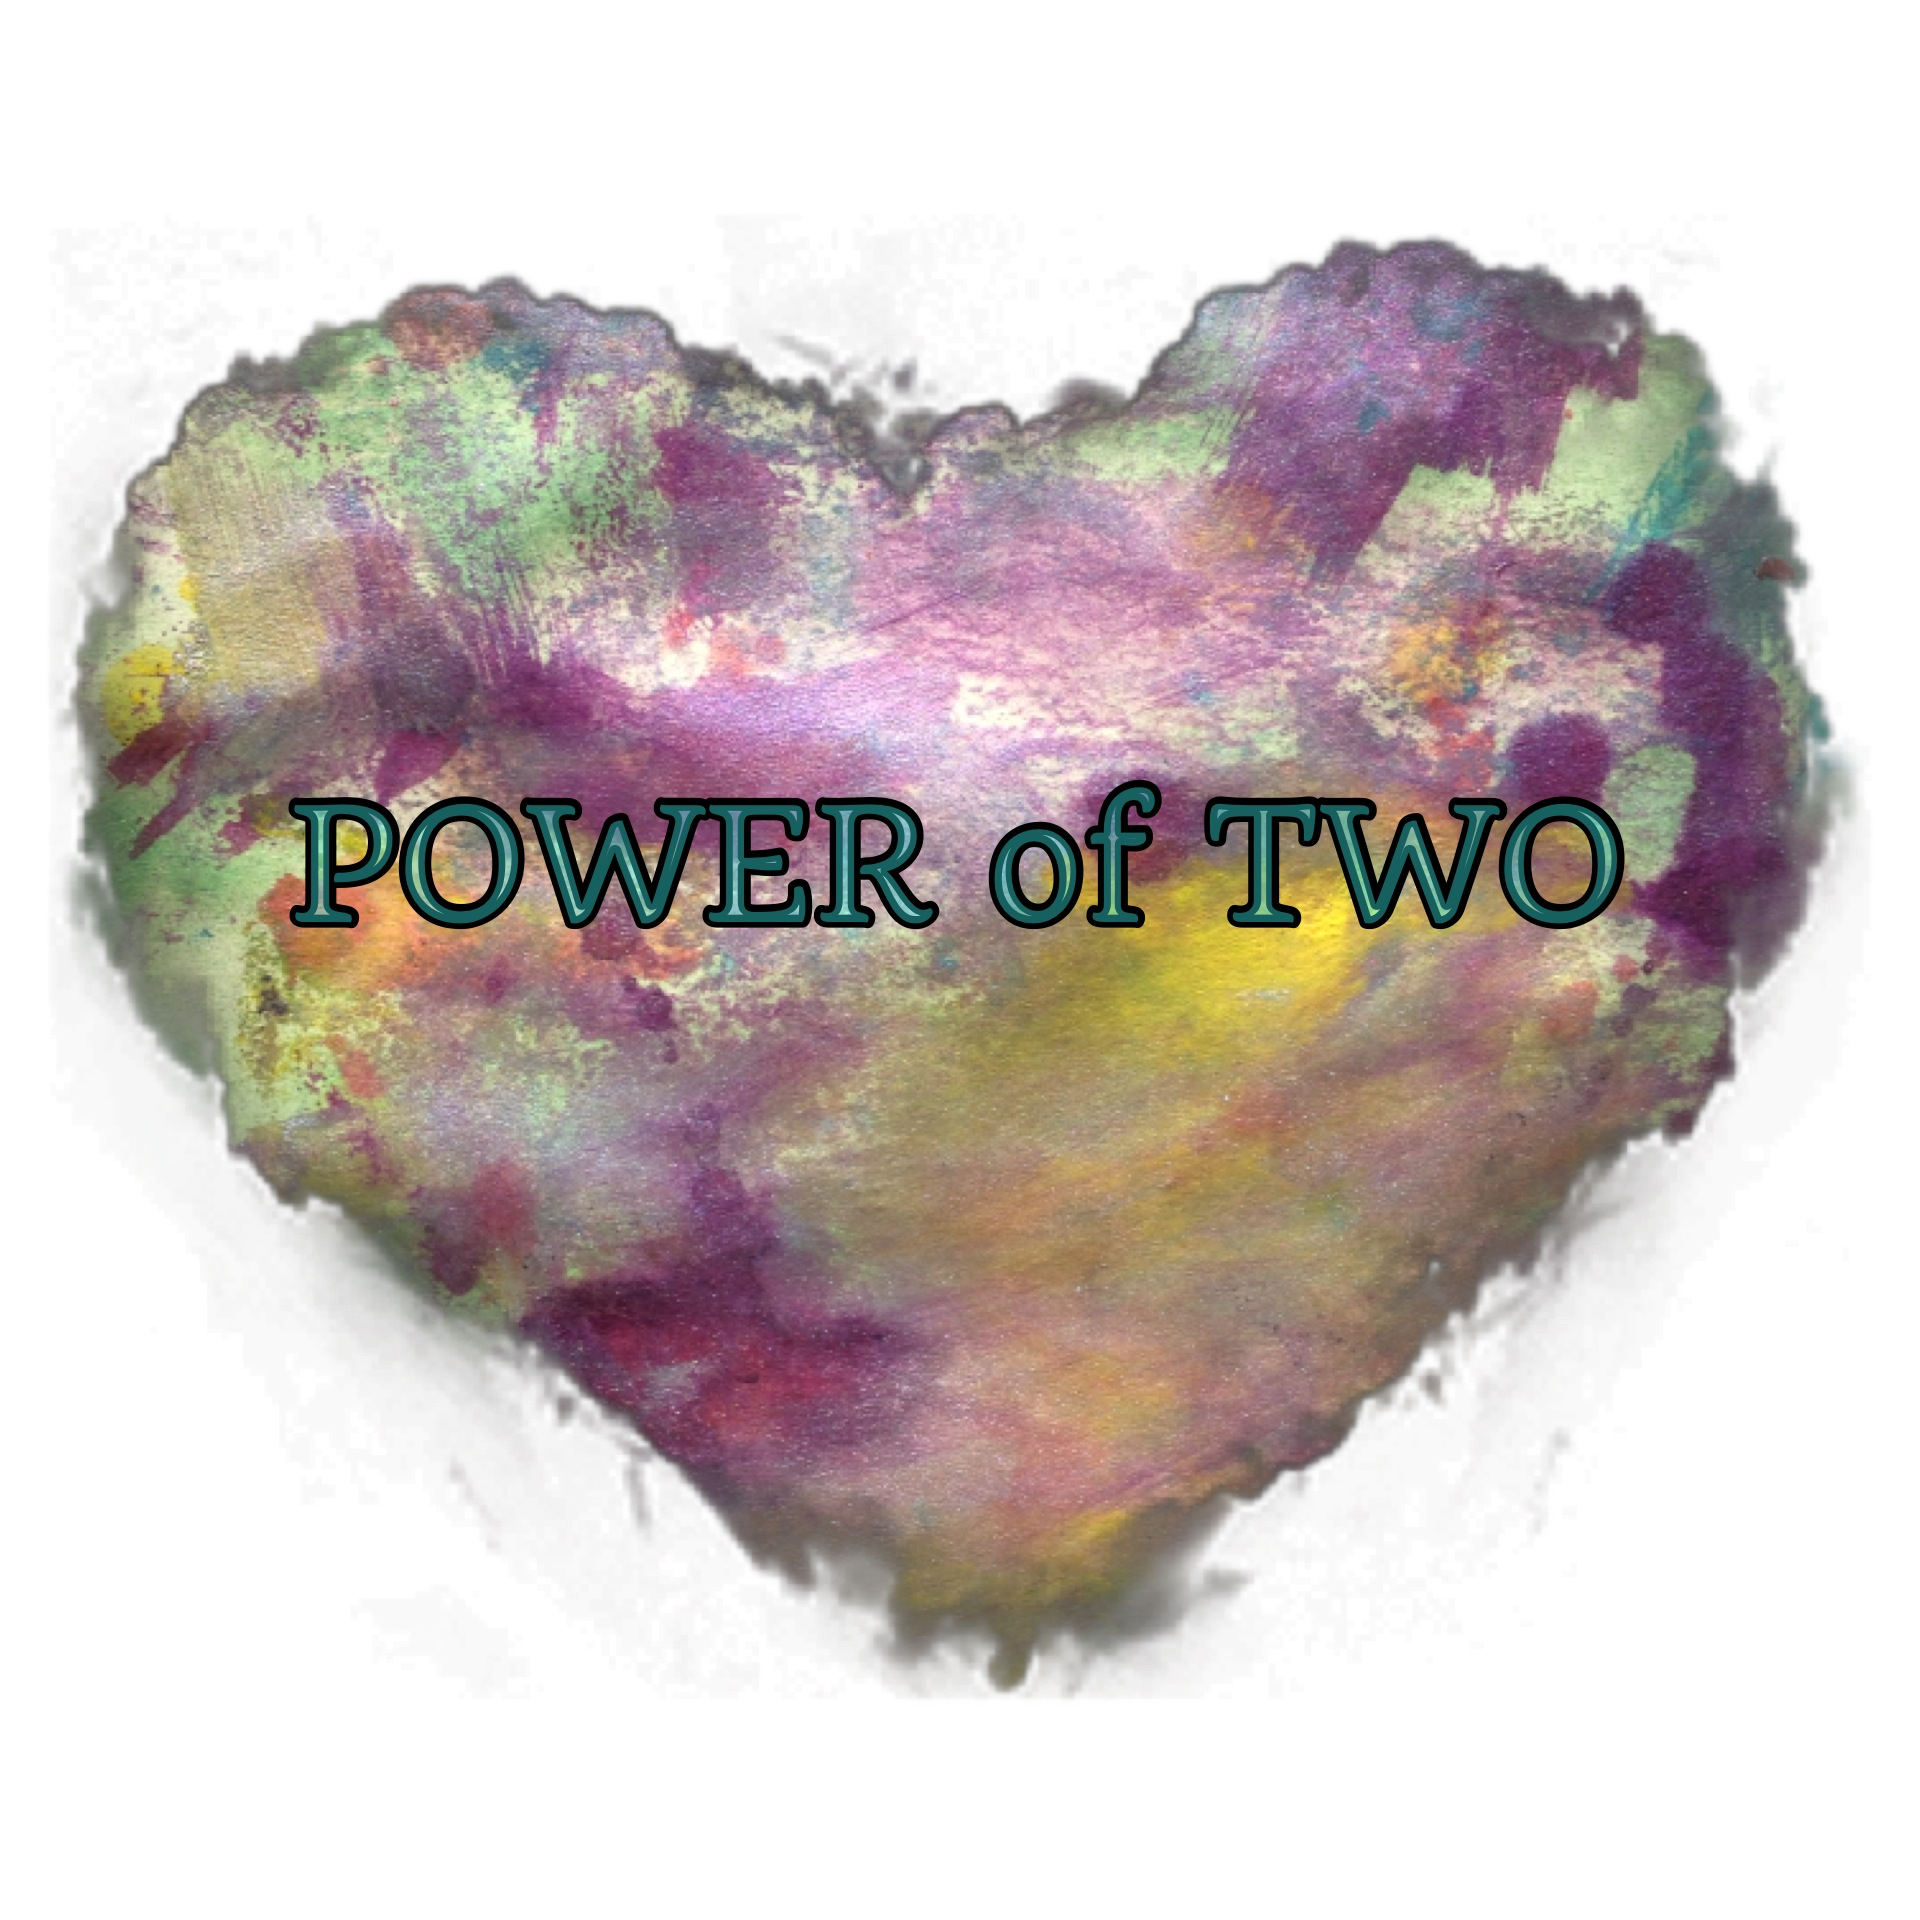 Power of Two